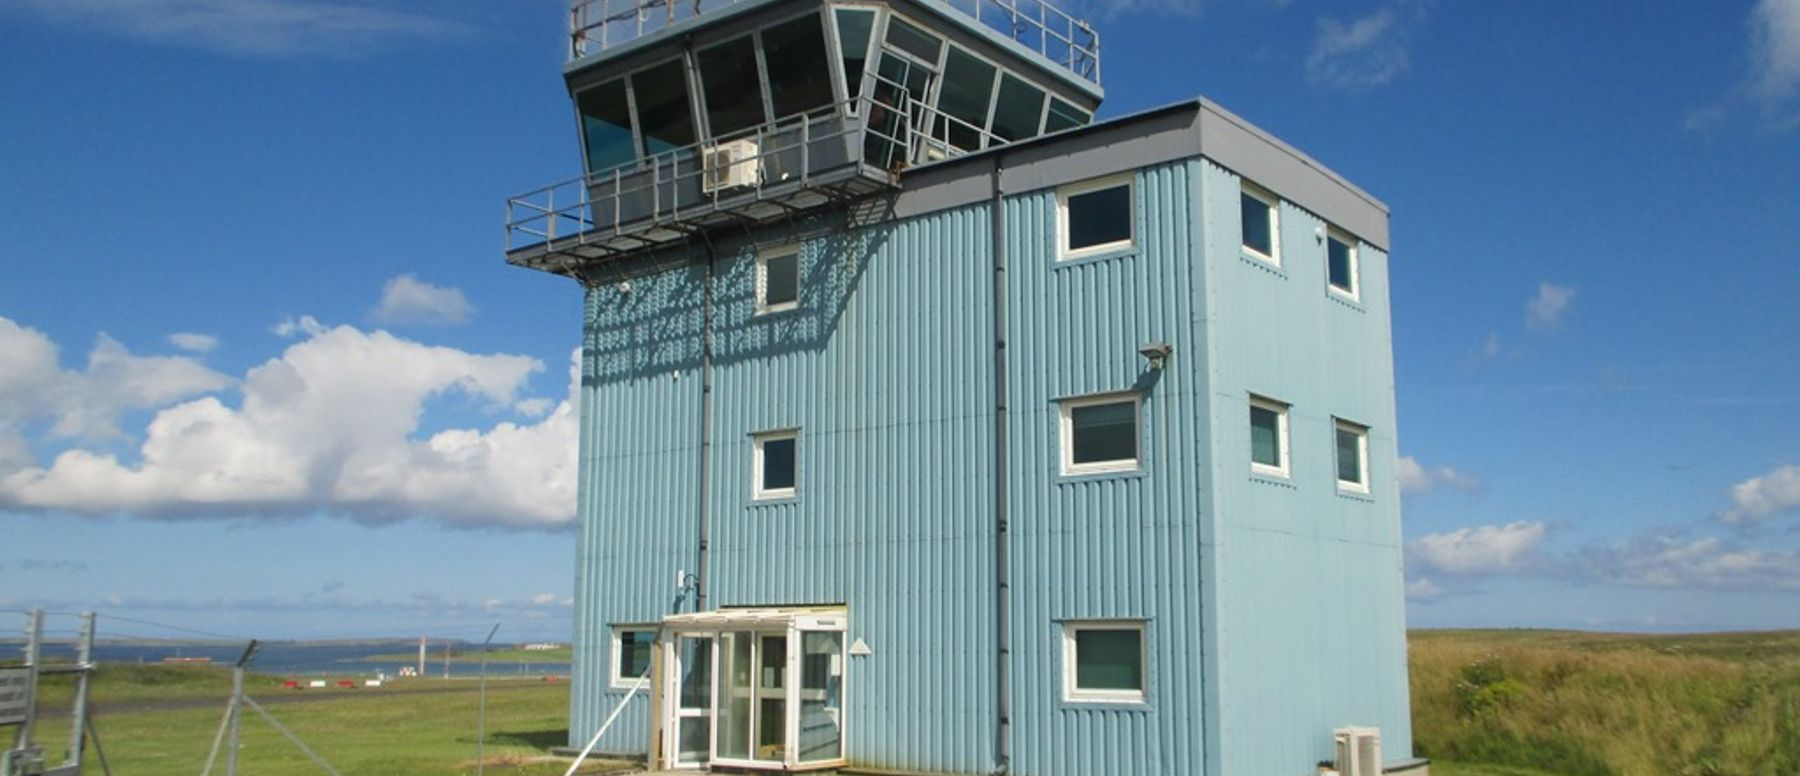 Kirkwall Air Traffic Control Tower